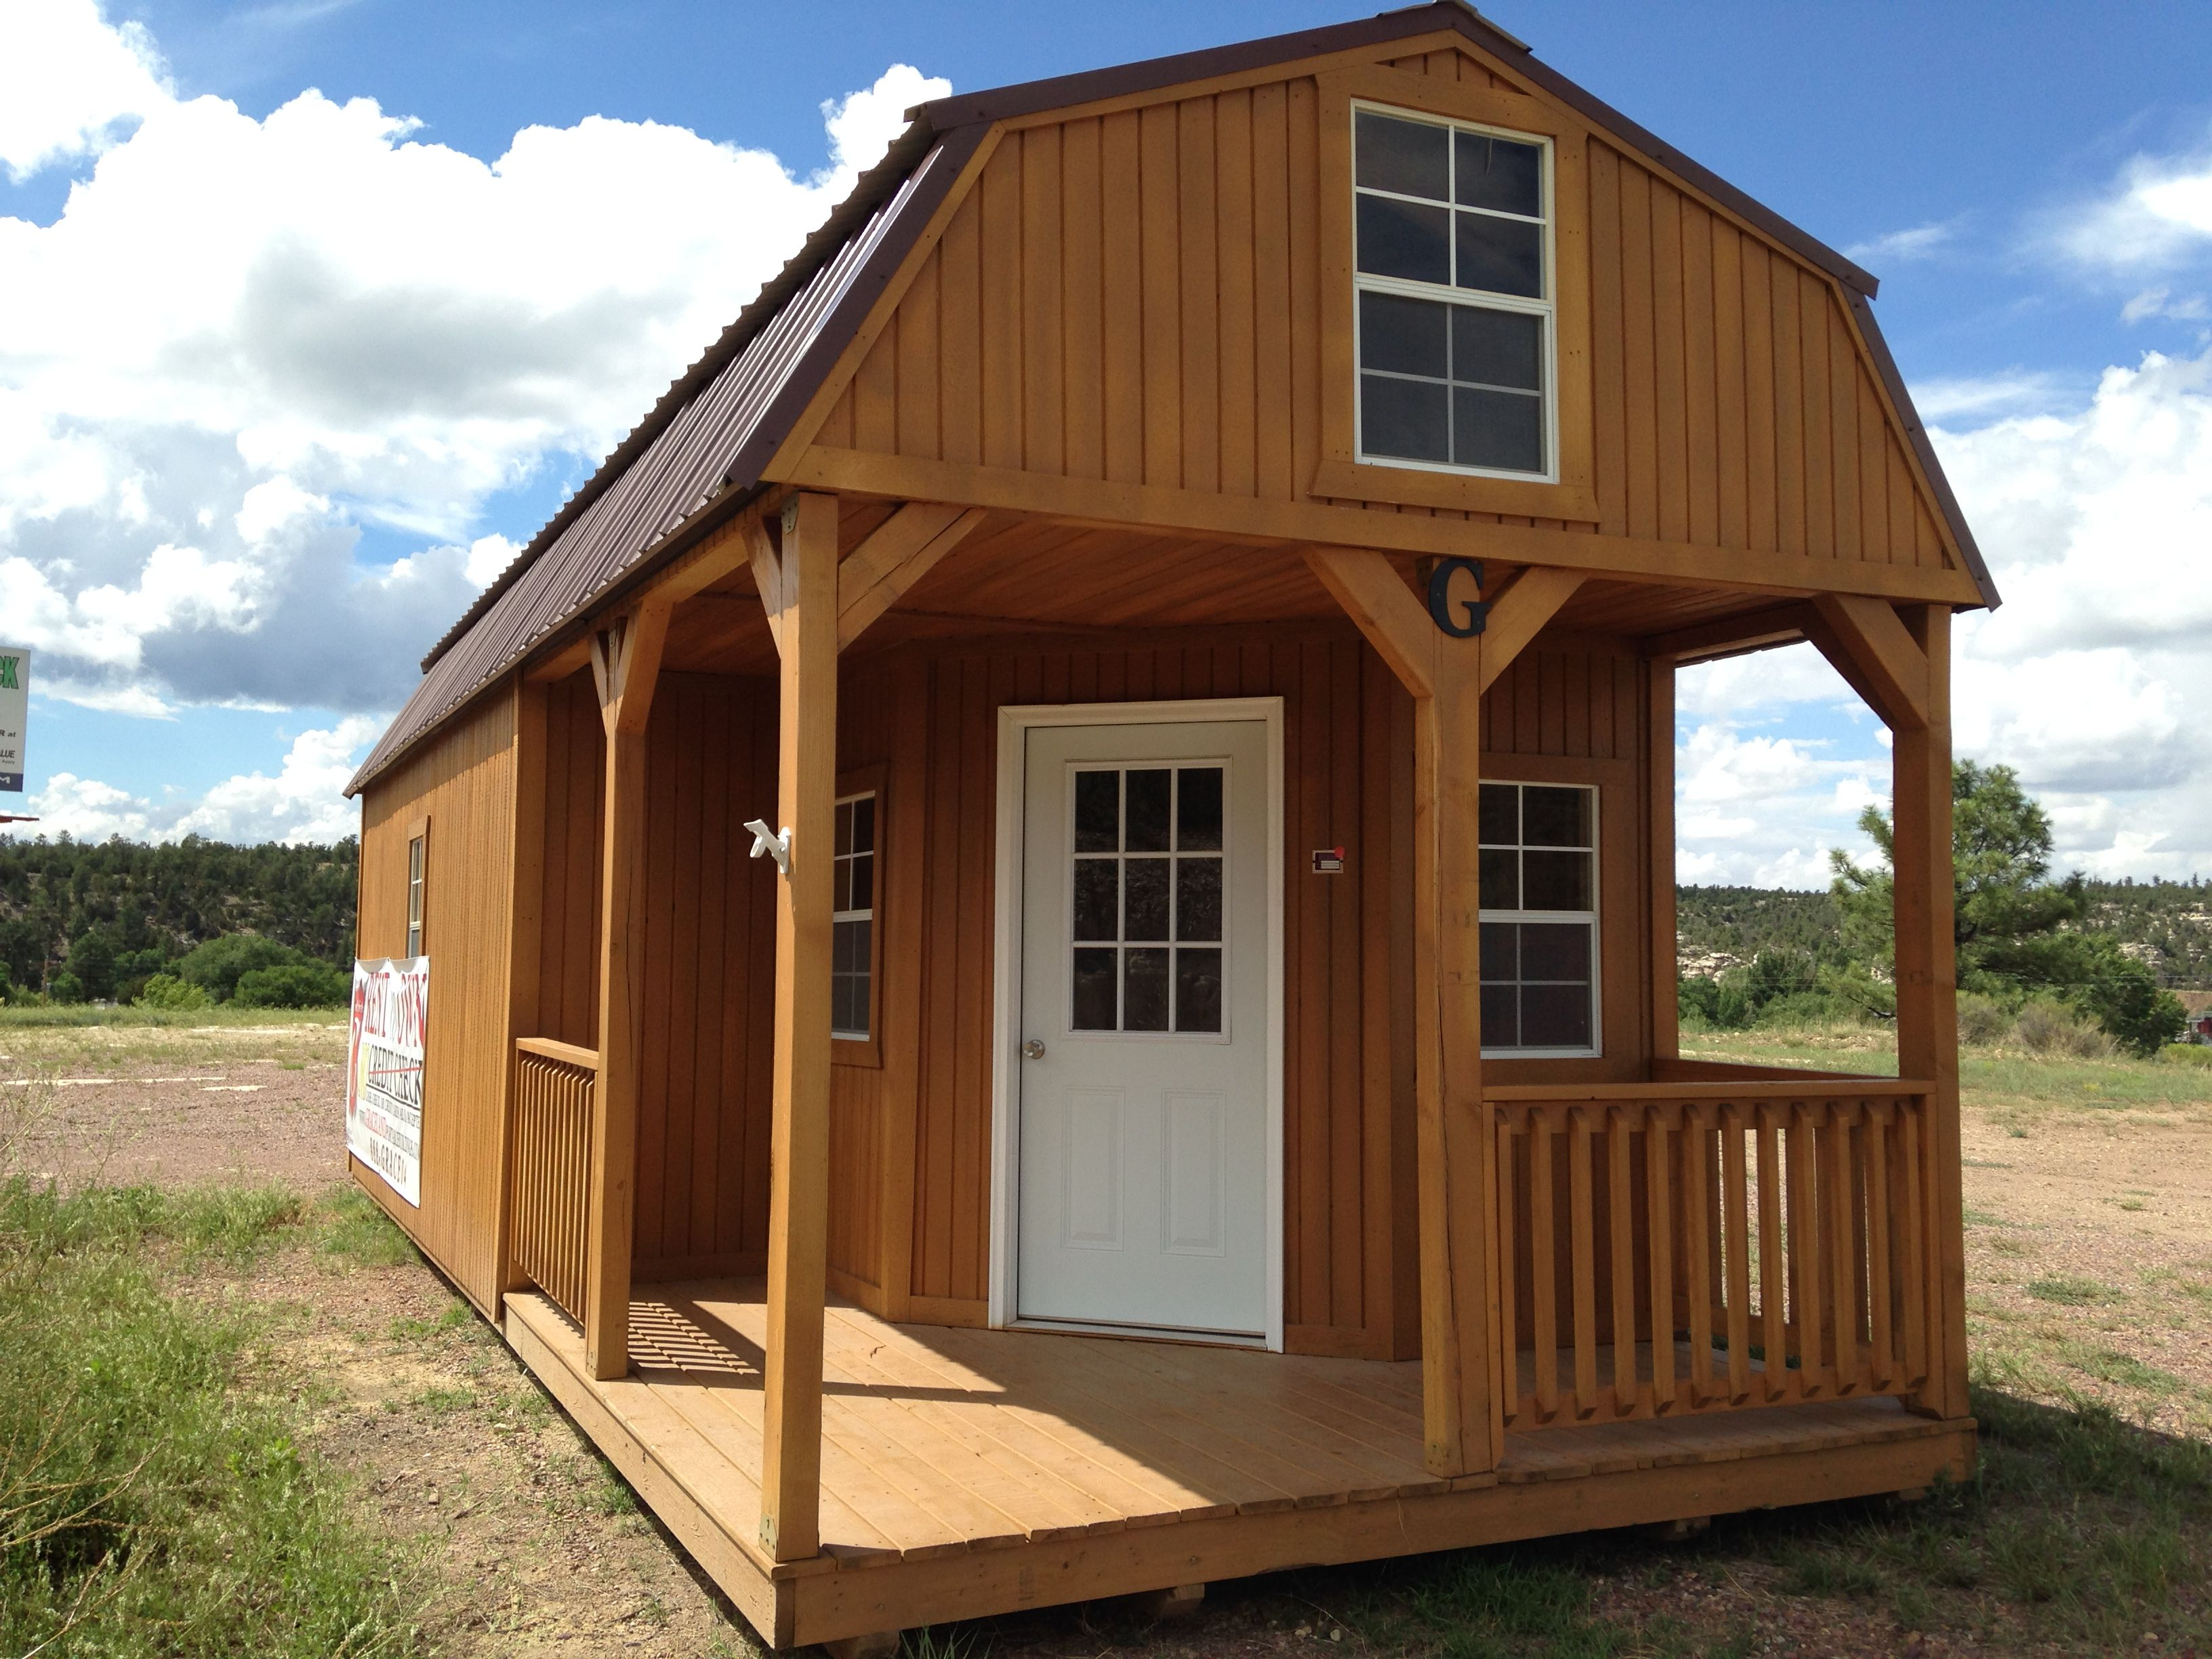 Wraparound Lofted Barn Cabin Barn Style Shed Shed With Porch